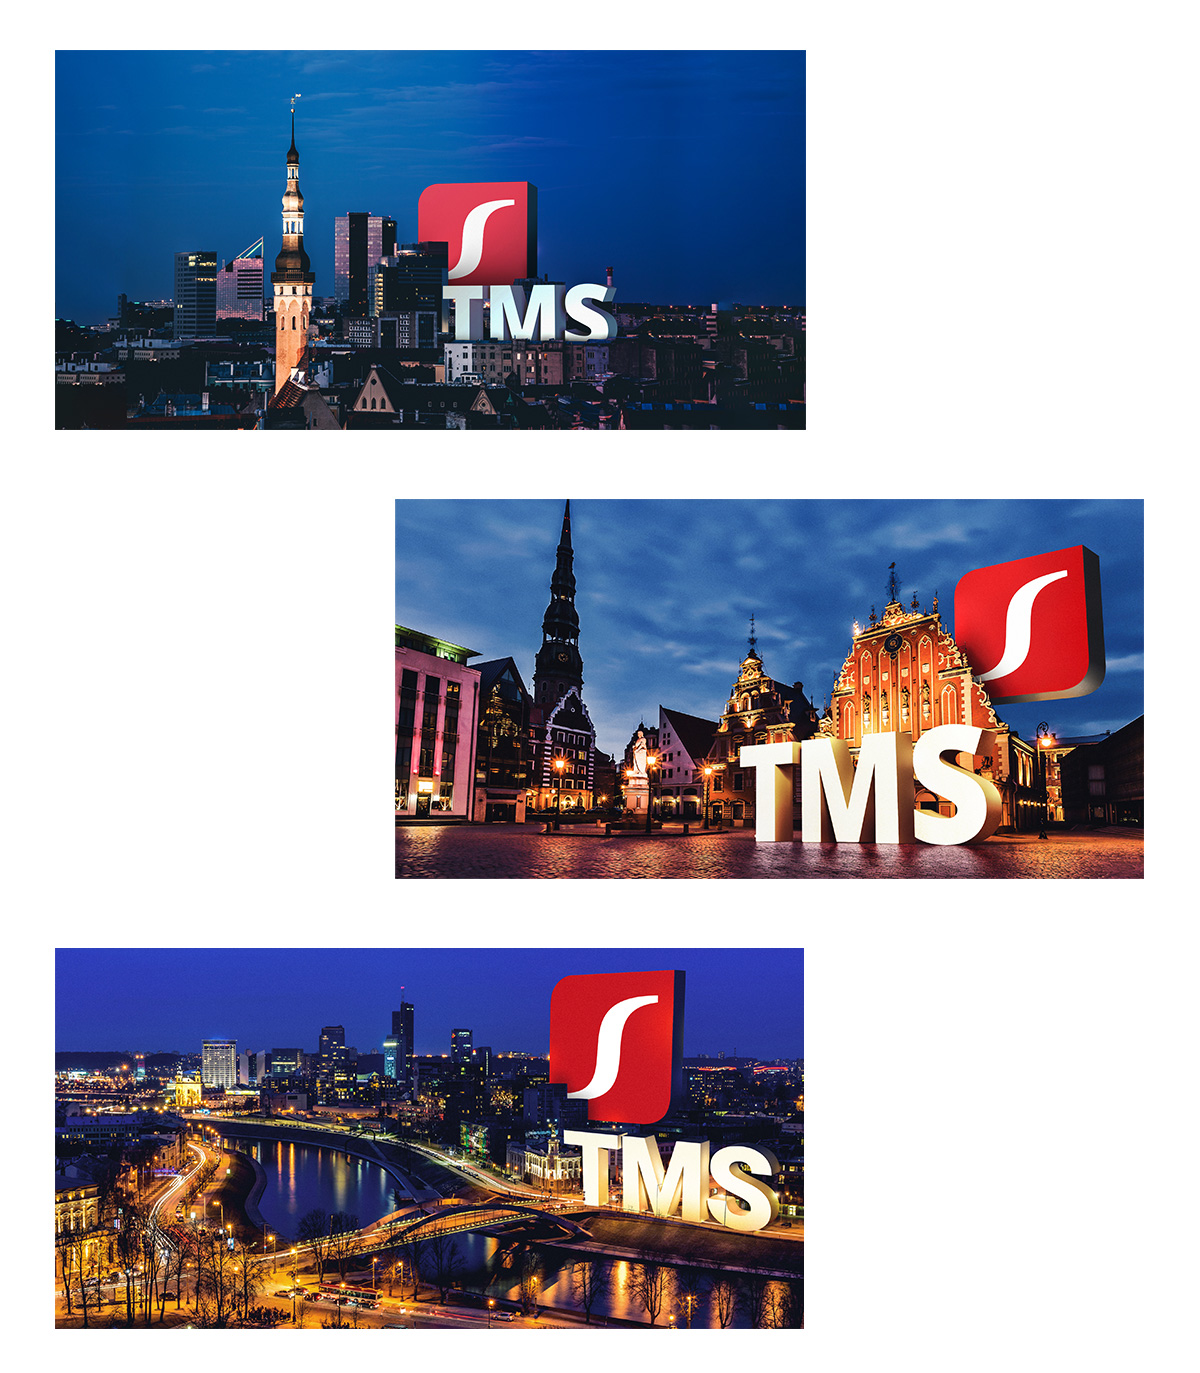 Dedicated key visuals help promote the TMS services on the local markets.